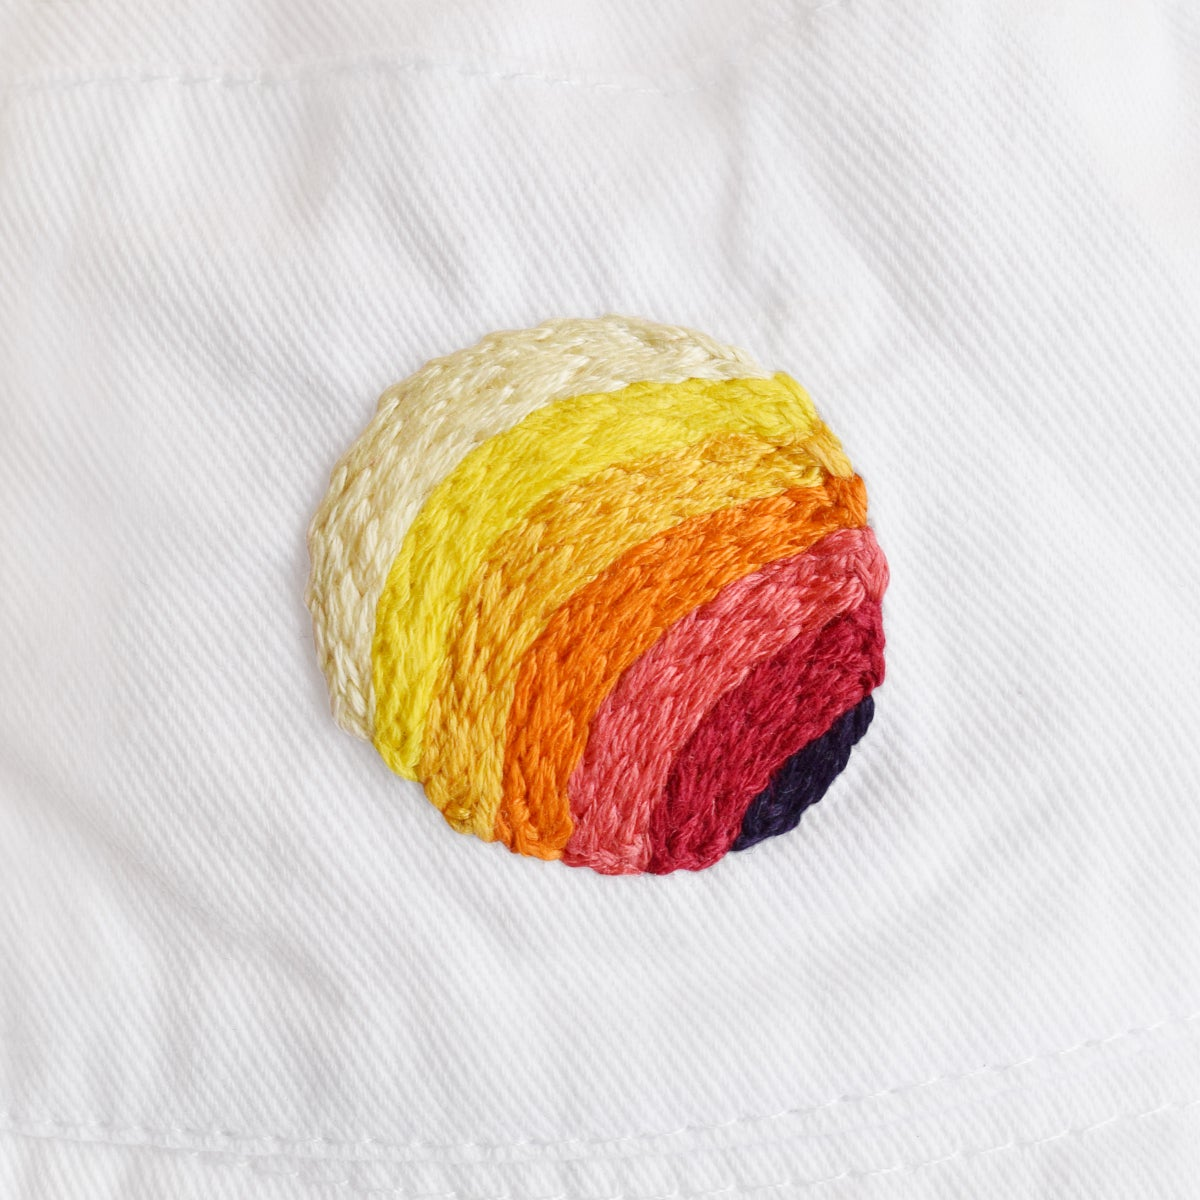 Image of SOL – Limited Edition Hand-Sewn Baby Hats